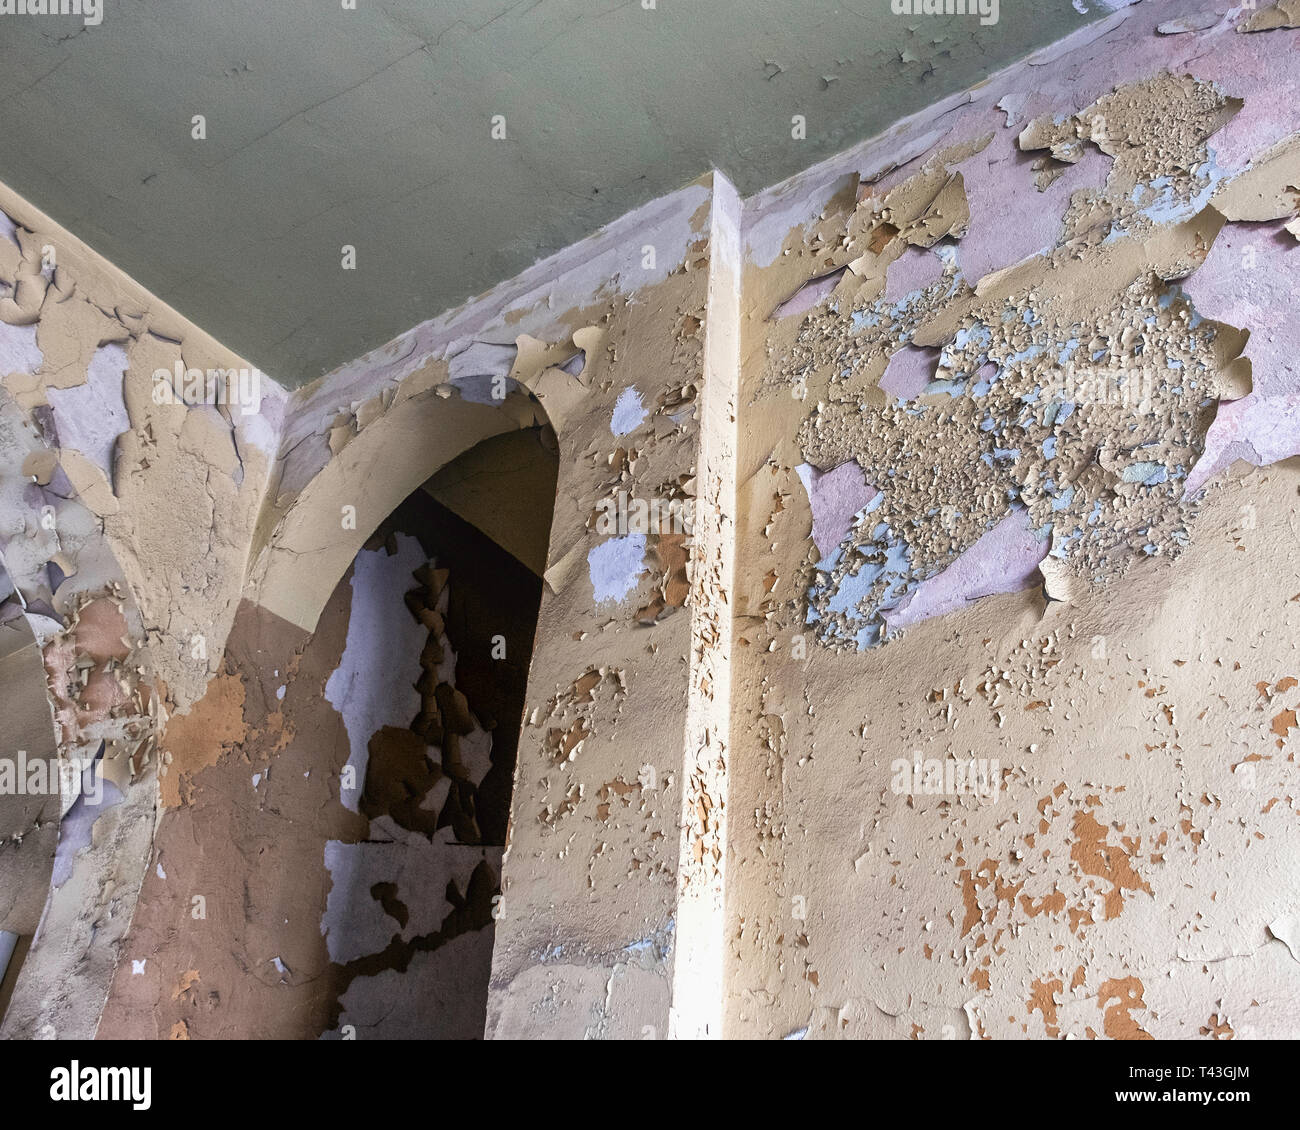 Weathered old wall of Building with layers of peeling paint - Stock Image